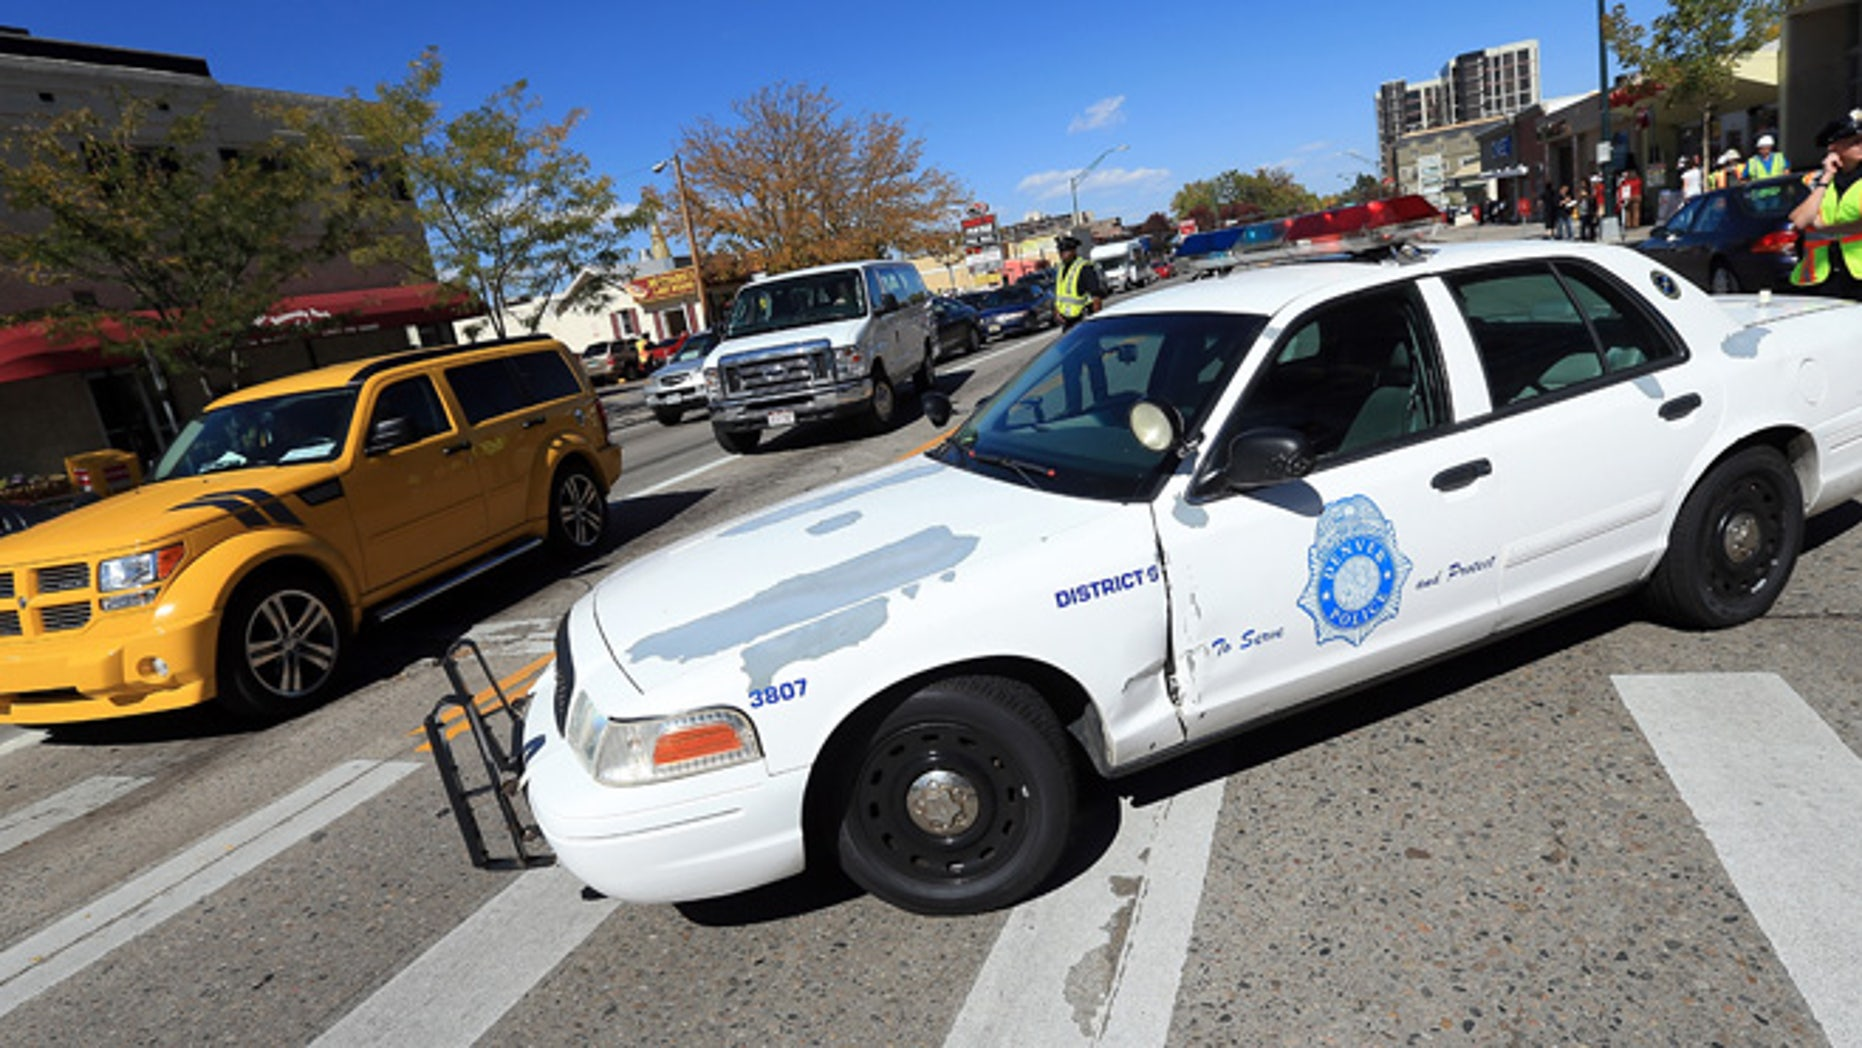 DENVER, CO - OCTOBER 03:  The Denver Police Department close streets in preparation for the Presidential Debate at the University of Denver on October 3, 2012 in Denver, Colorado. The first of four debates for the 2012 Election, three Presidential and one Vice Presidential, is moderated by PBS's Jim Lehrer and focuses on domestic issues: the economy, health care, and the role of government.  (Photo by Doug Pensinger/Getty Images)